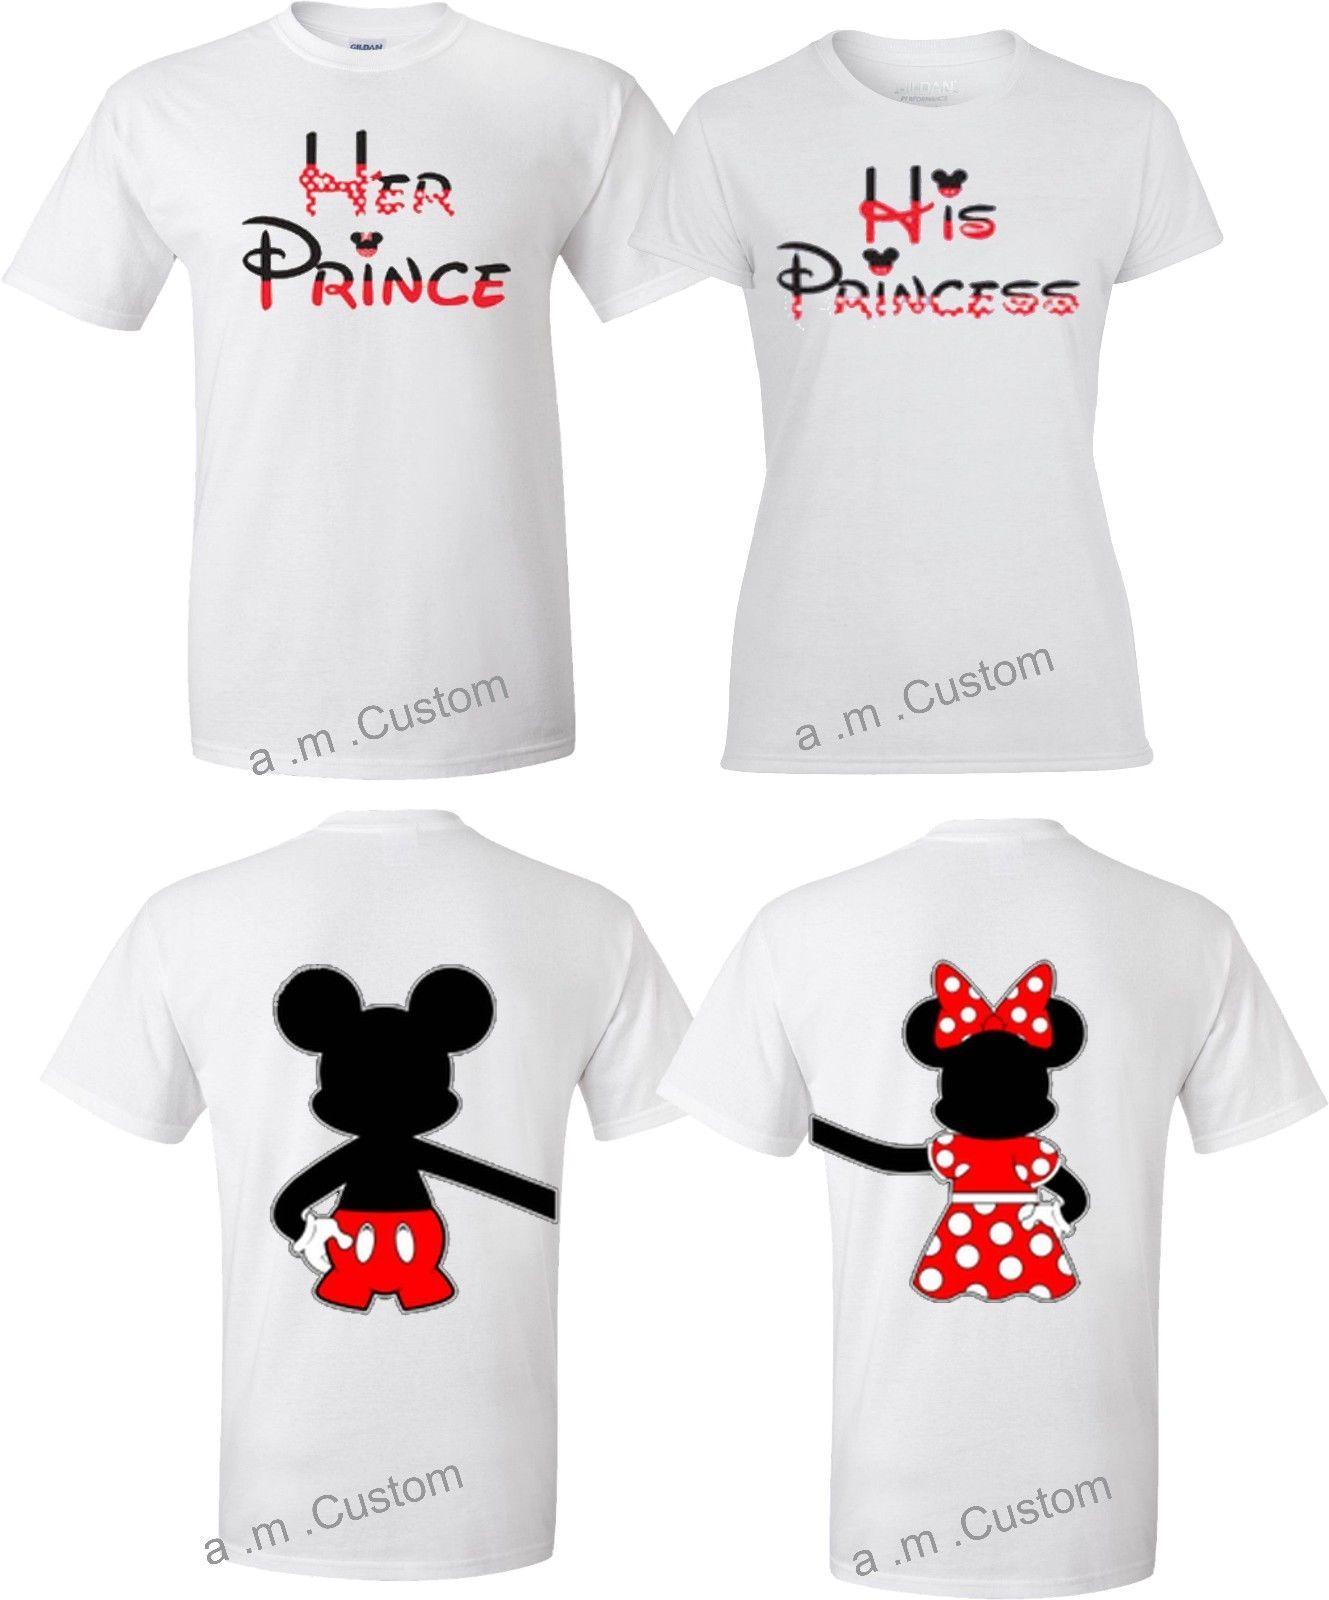 bf9a59d2f3 Mickey and Minnie Disney Prince and Princess couple matching funny cute T-Shirts  in Clothing, Shoes & Accessories, Unisex Clothing, Shoes & Accs, ...